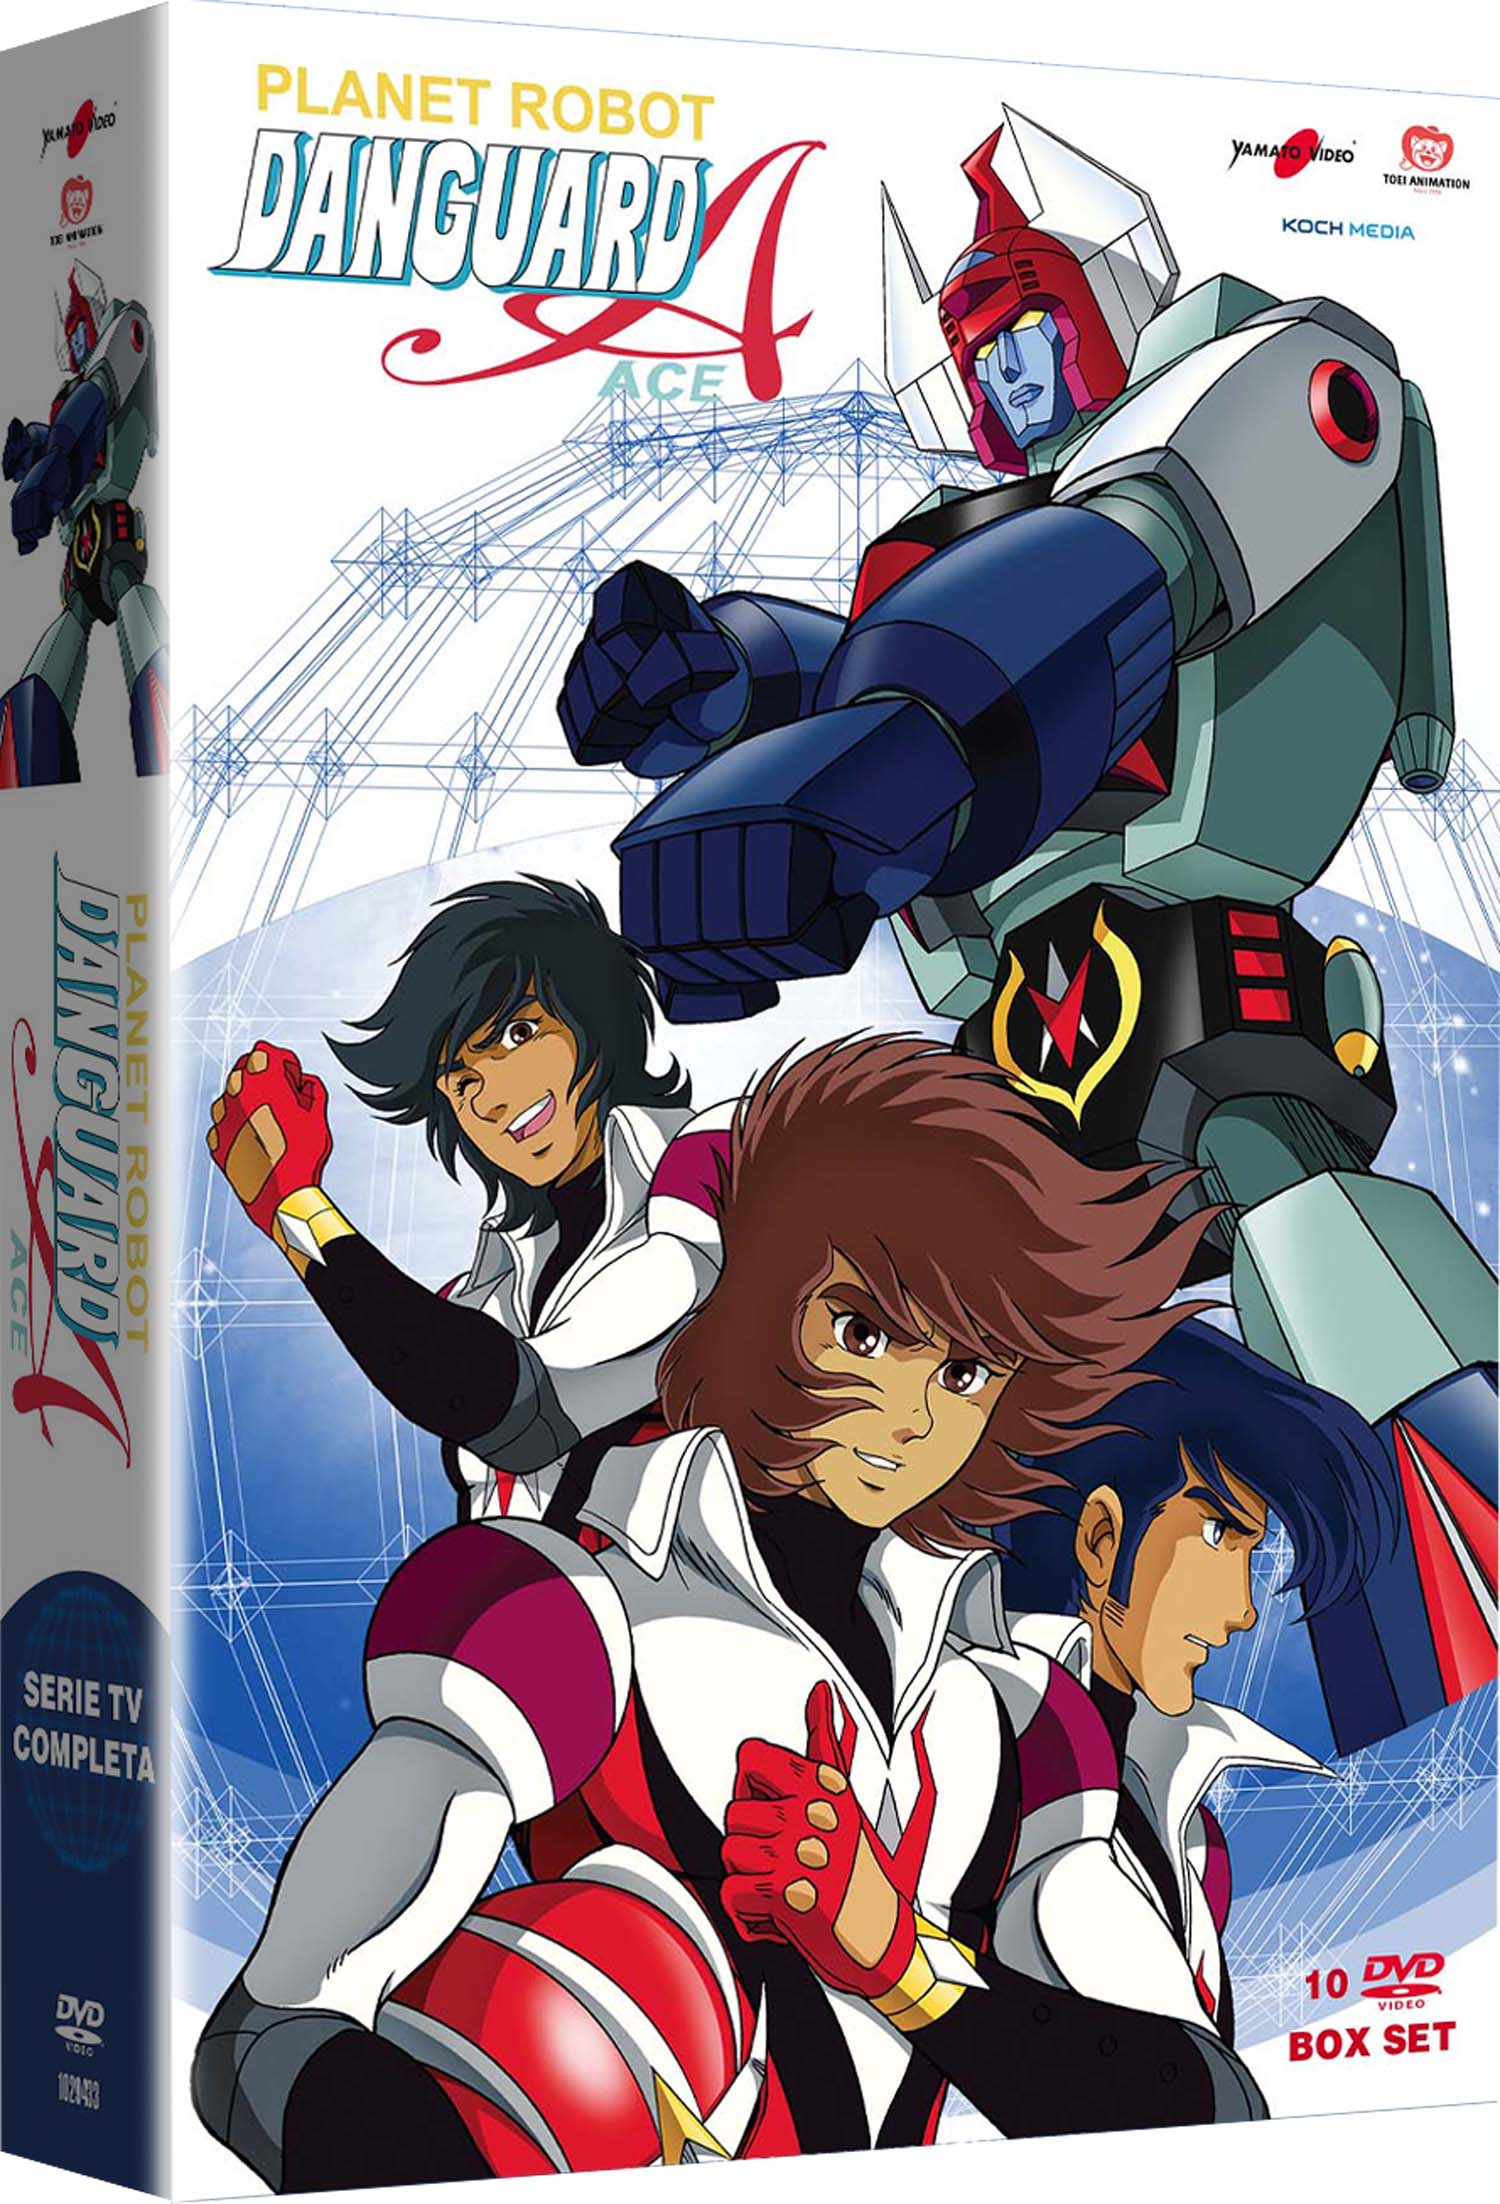 COF.PLANET ROBOT DANGUARD (10 DVD) (DVD)